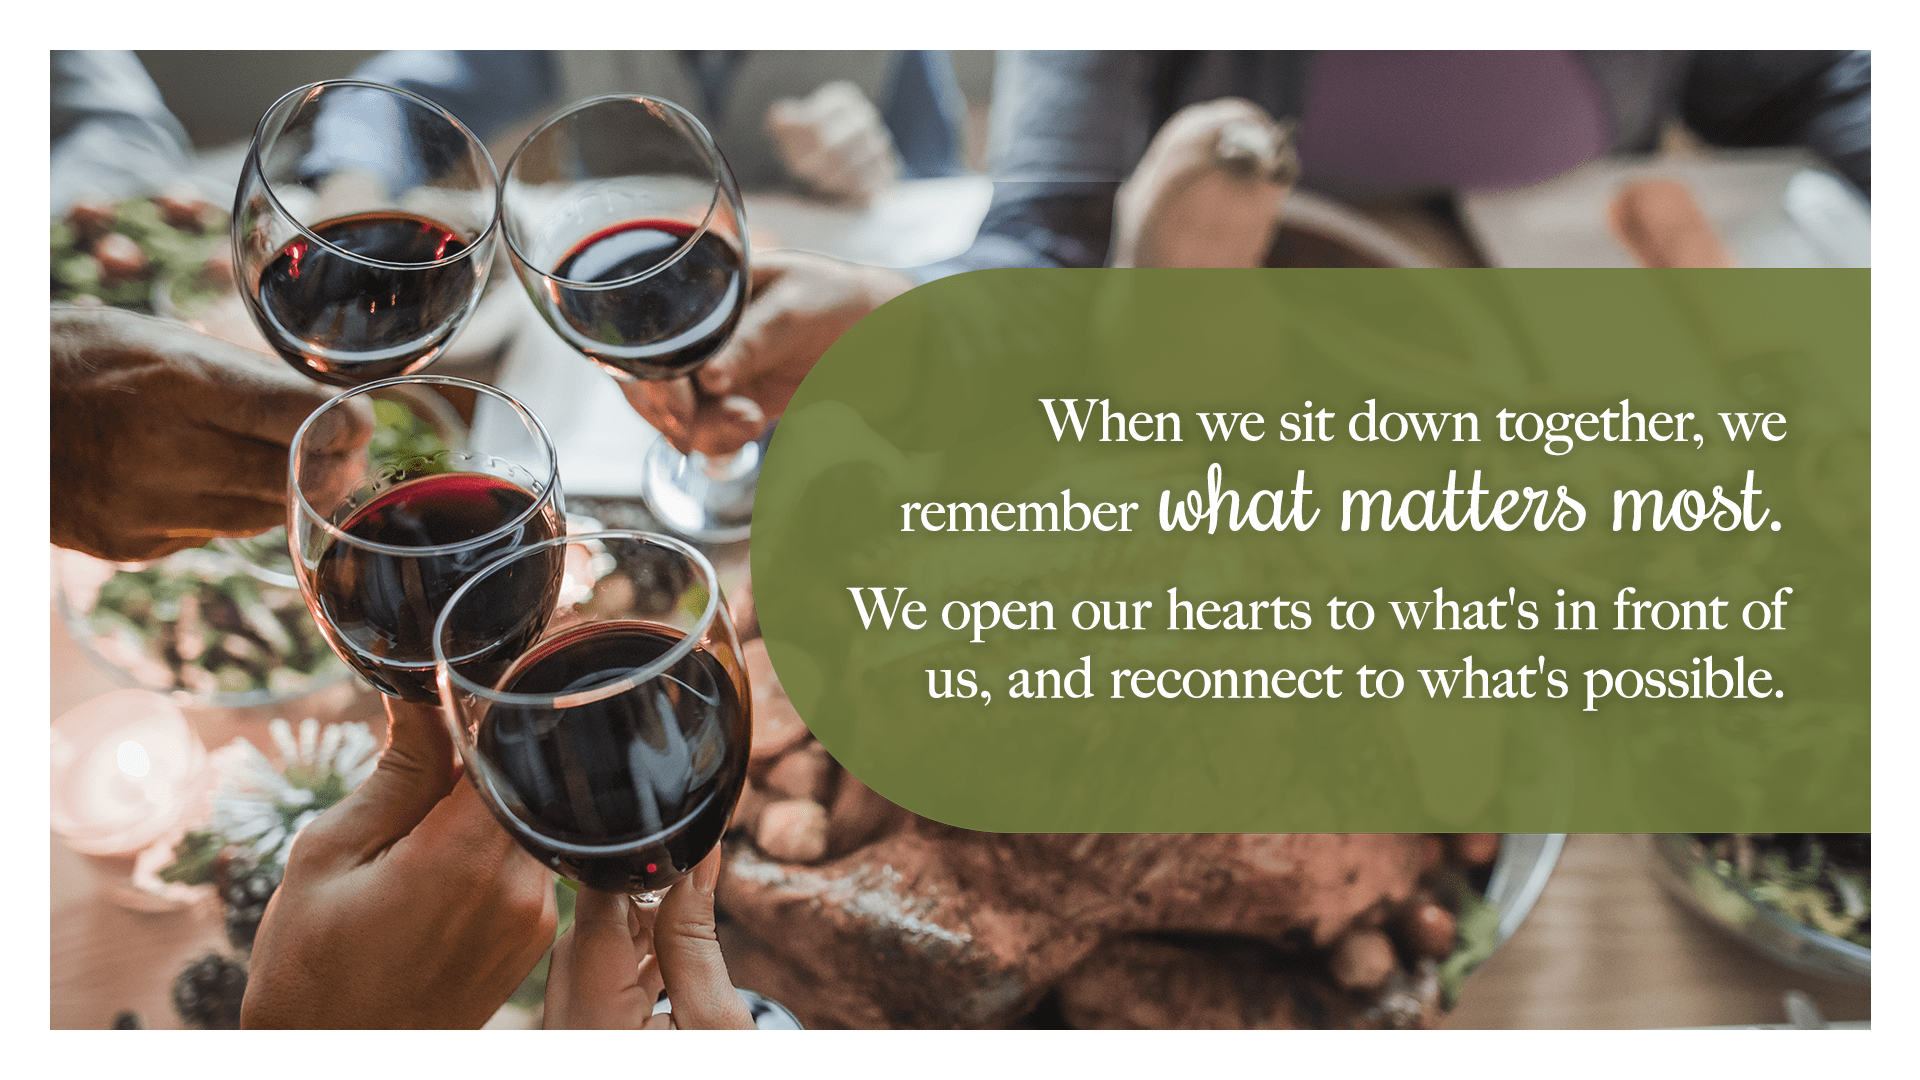 When we sit down together, we remember what matters most. We open our hearts to what's in front of us, and reconnect to what's possible.